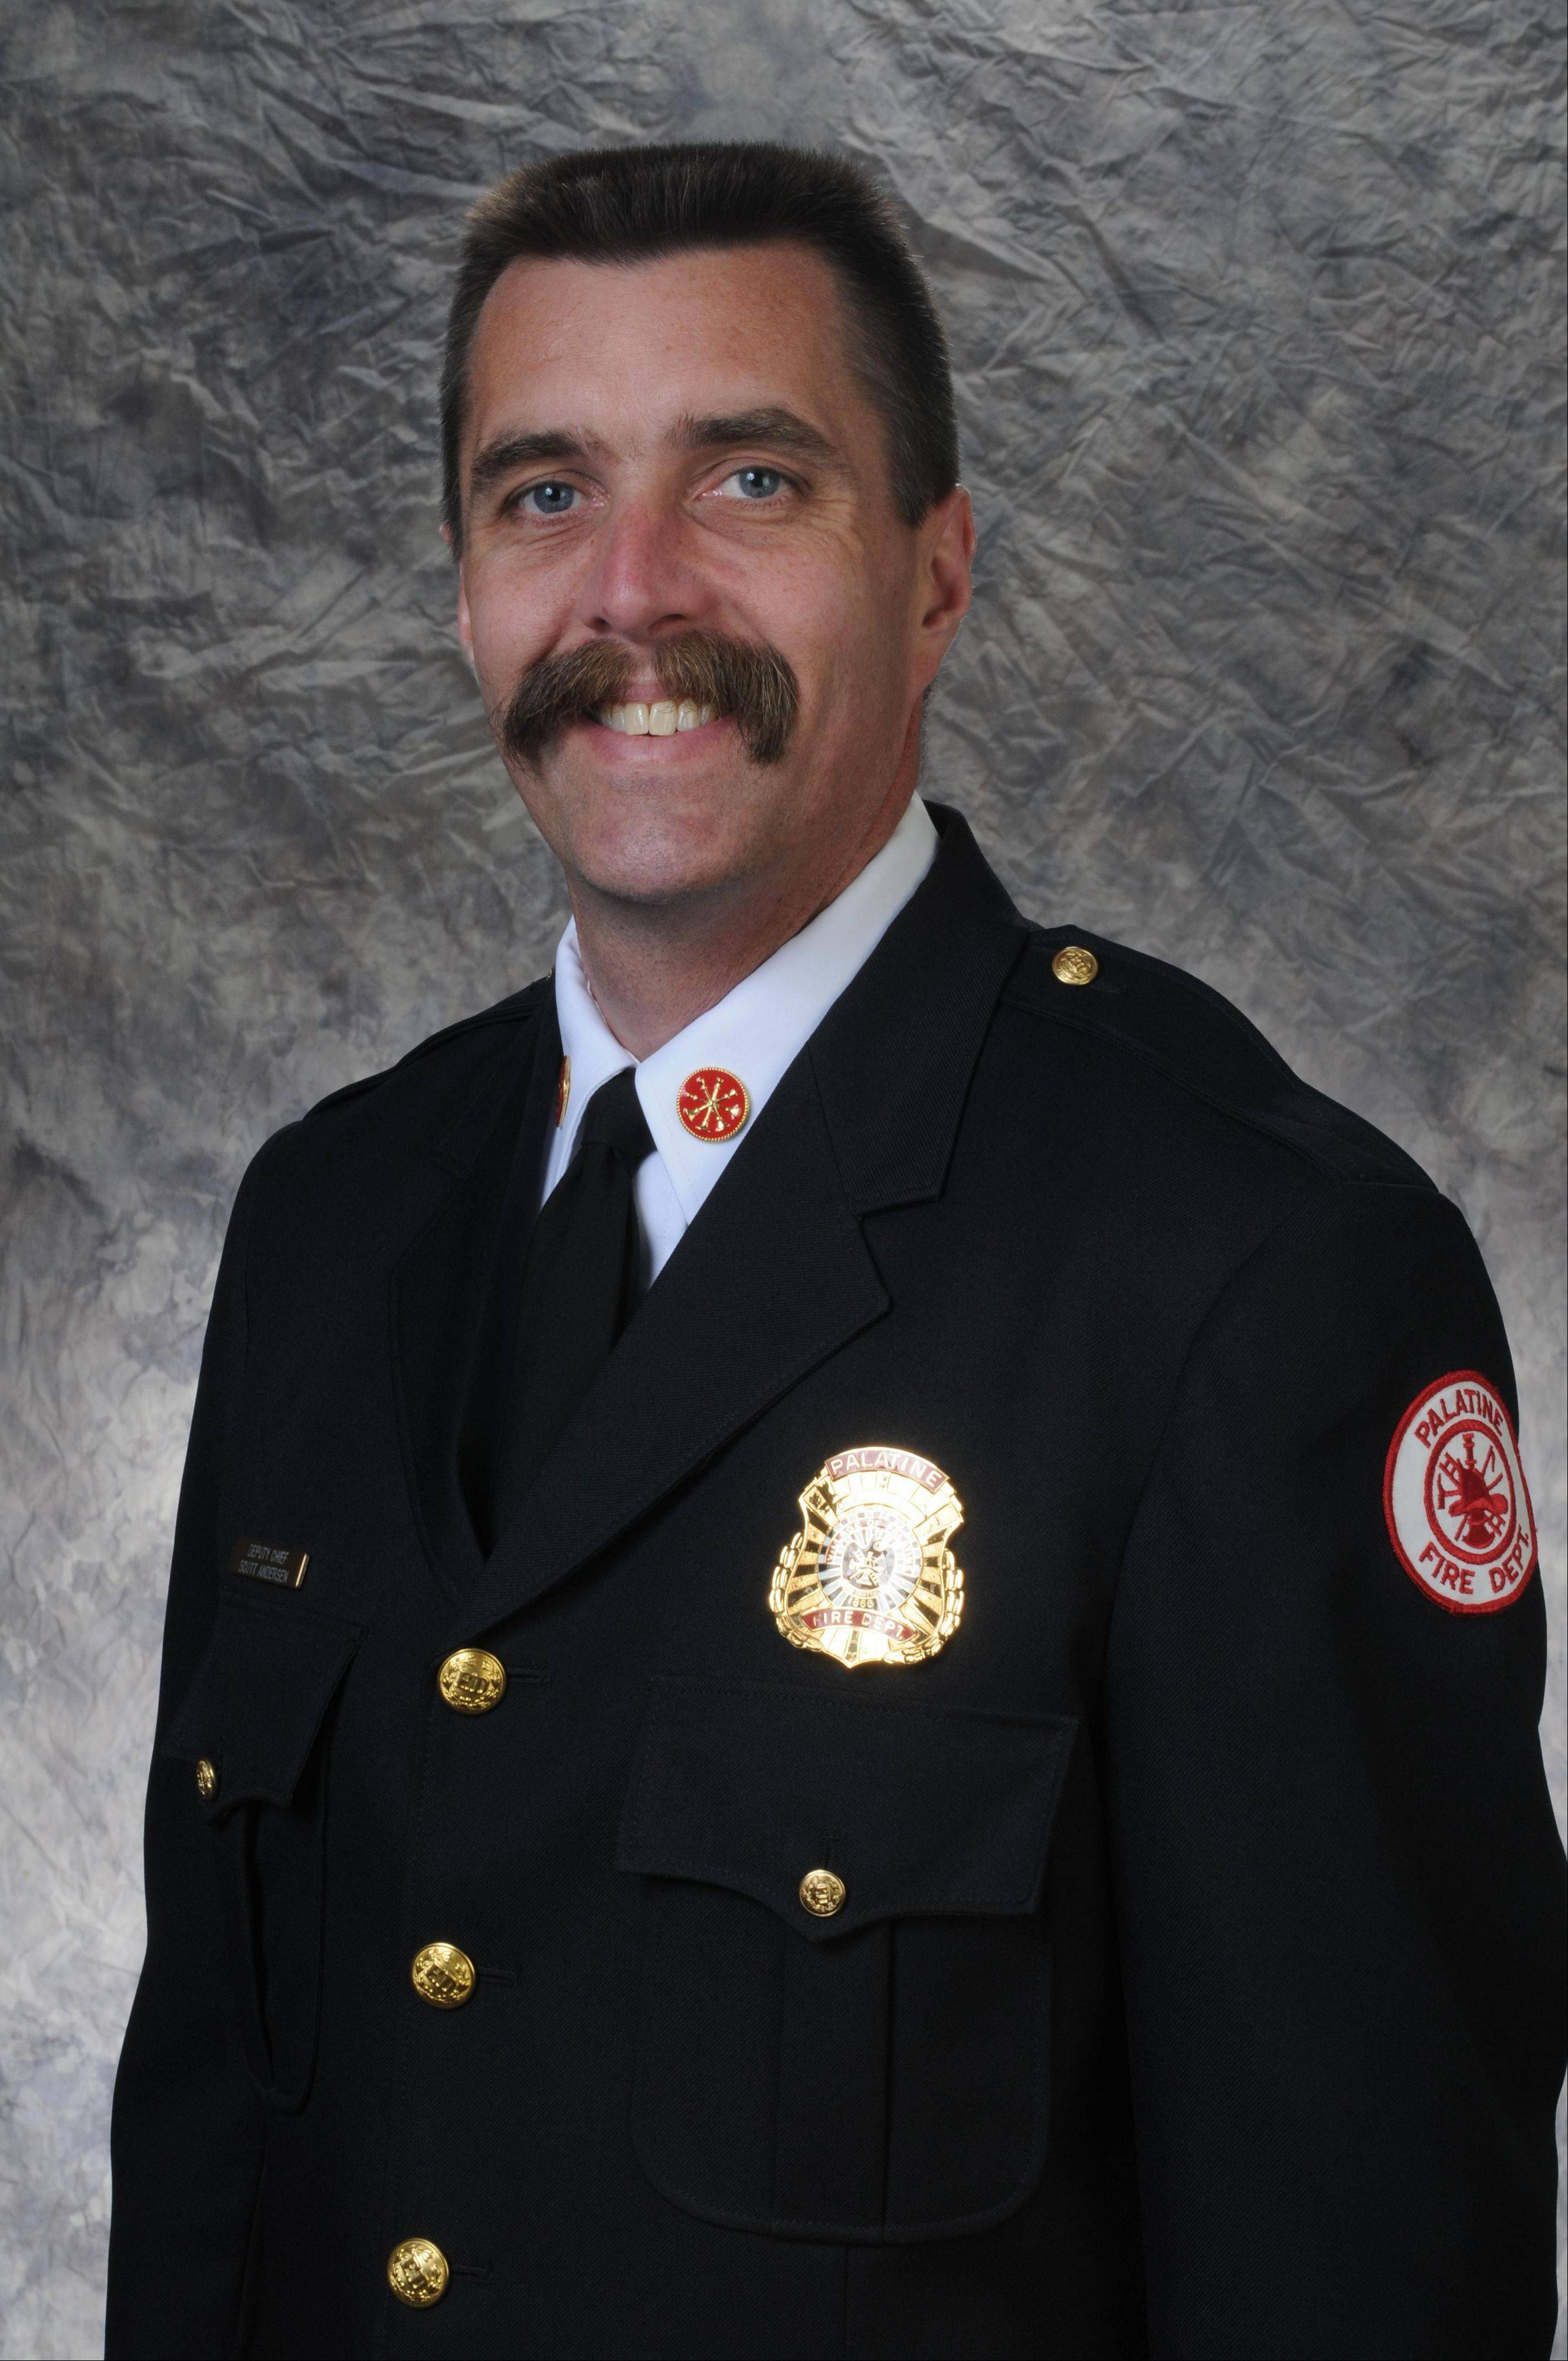 Scott Andersen will serve as Palatine�s new fire chief, succeeding Bob Falardeau. Village leaders will make the appointment official Monday night.